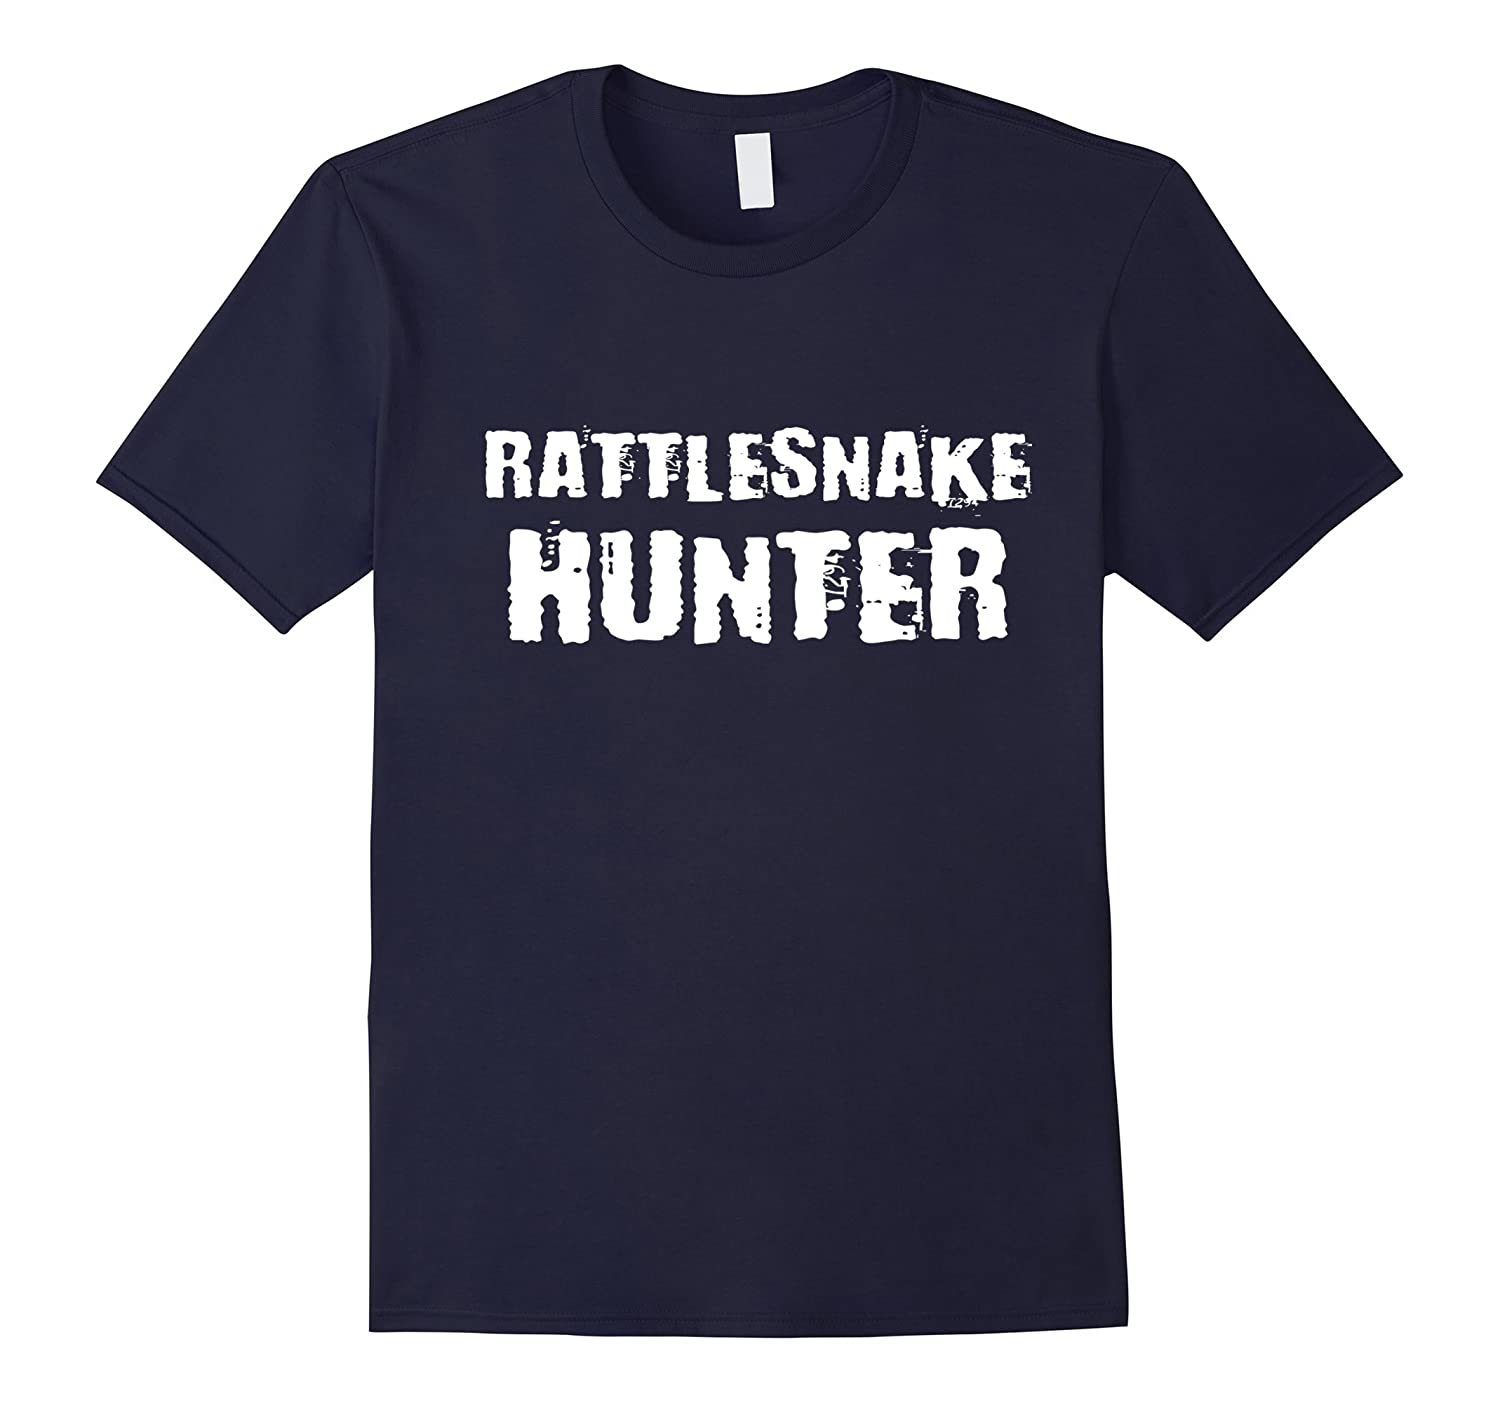 Rattlesnake Hunter Shirt Game Hunting Snake Outdoors Tee-AZP